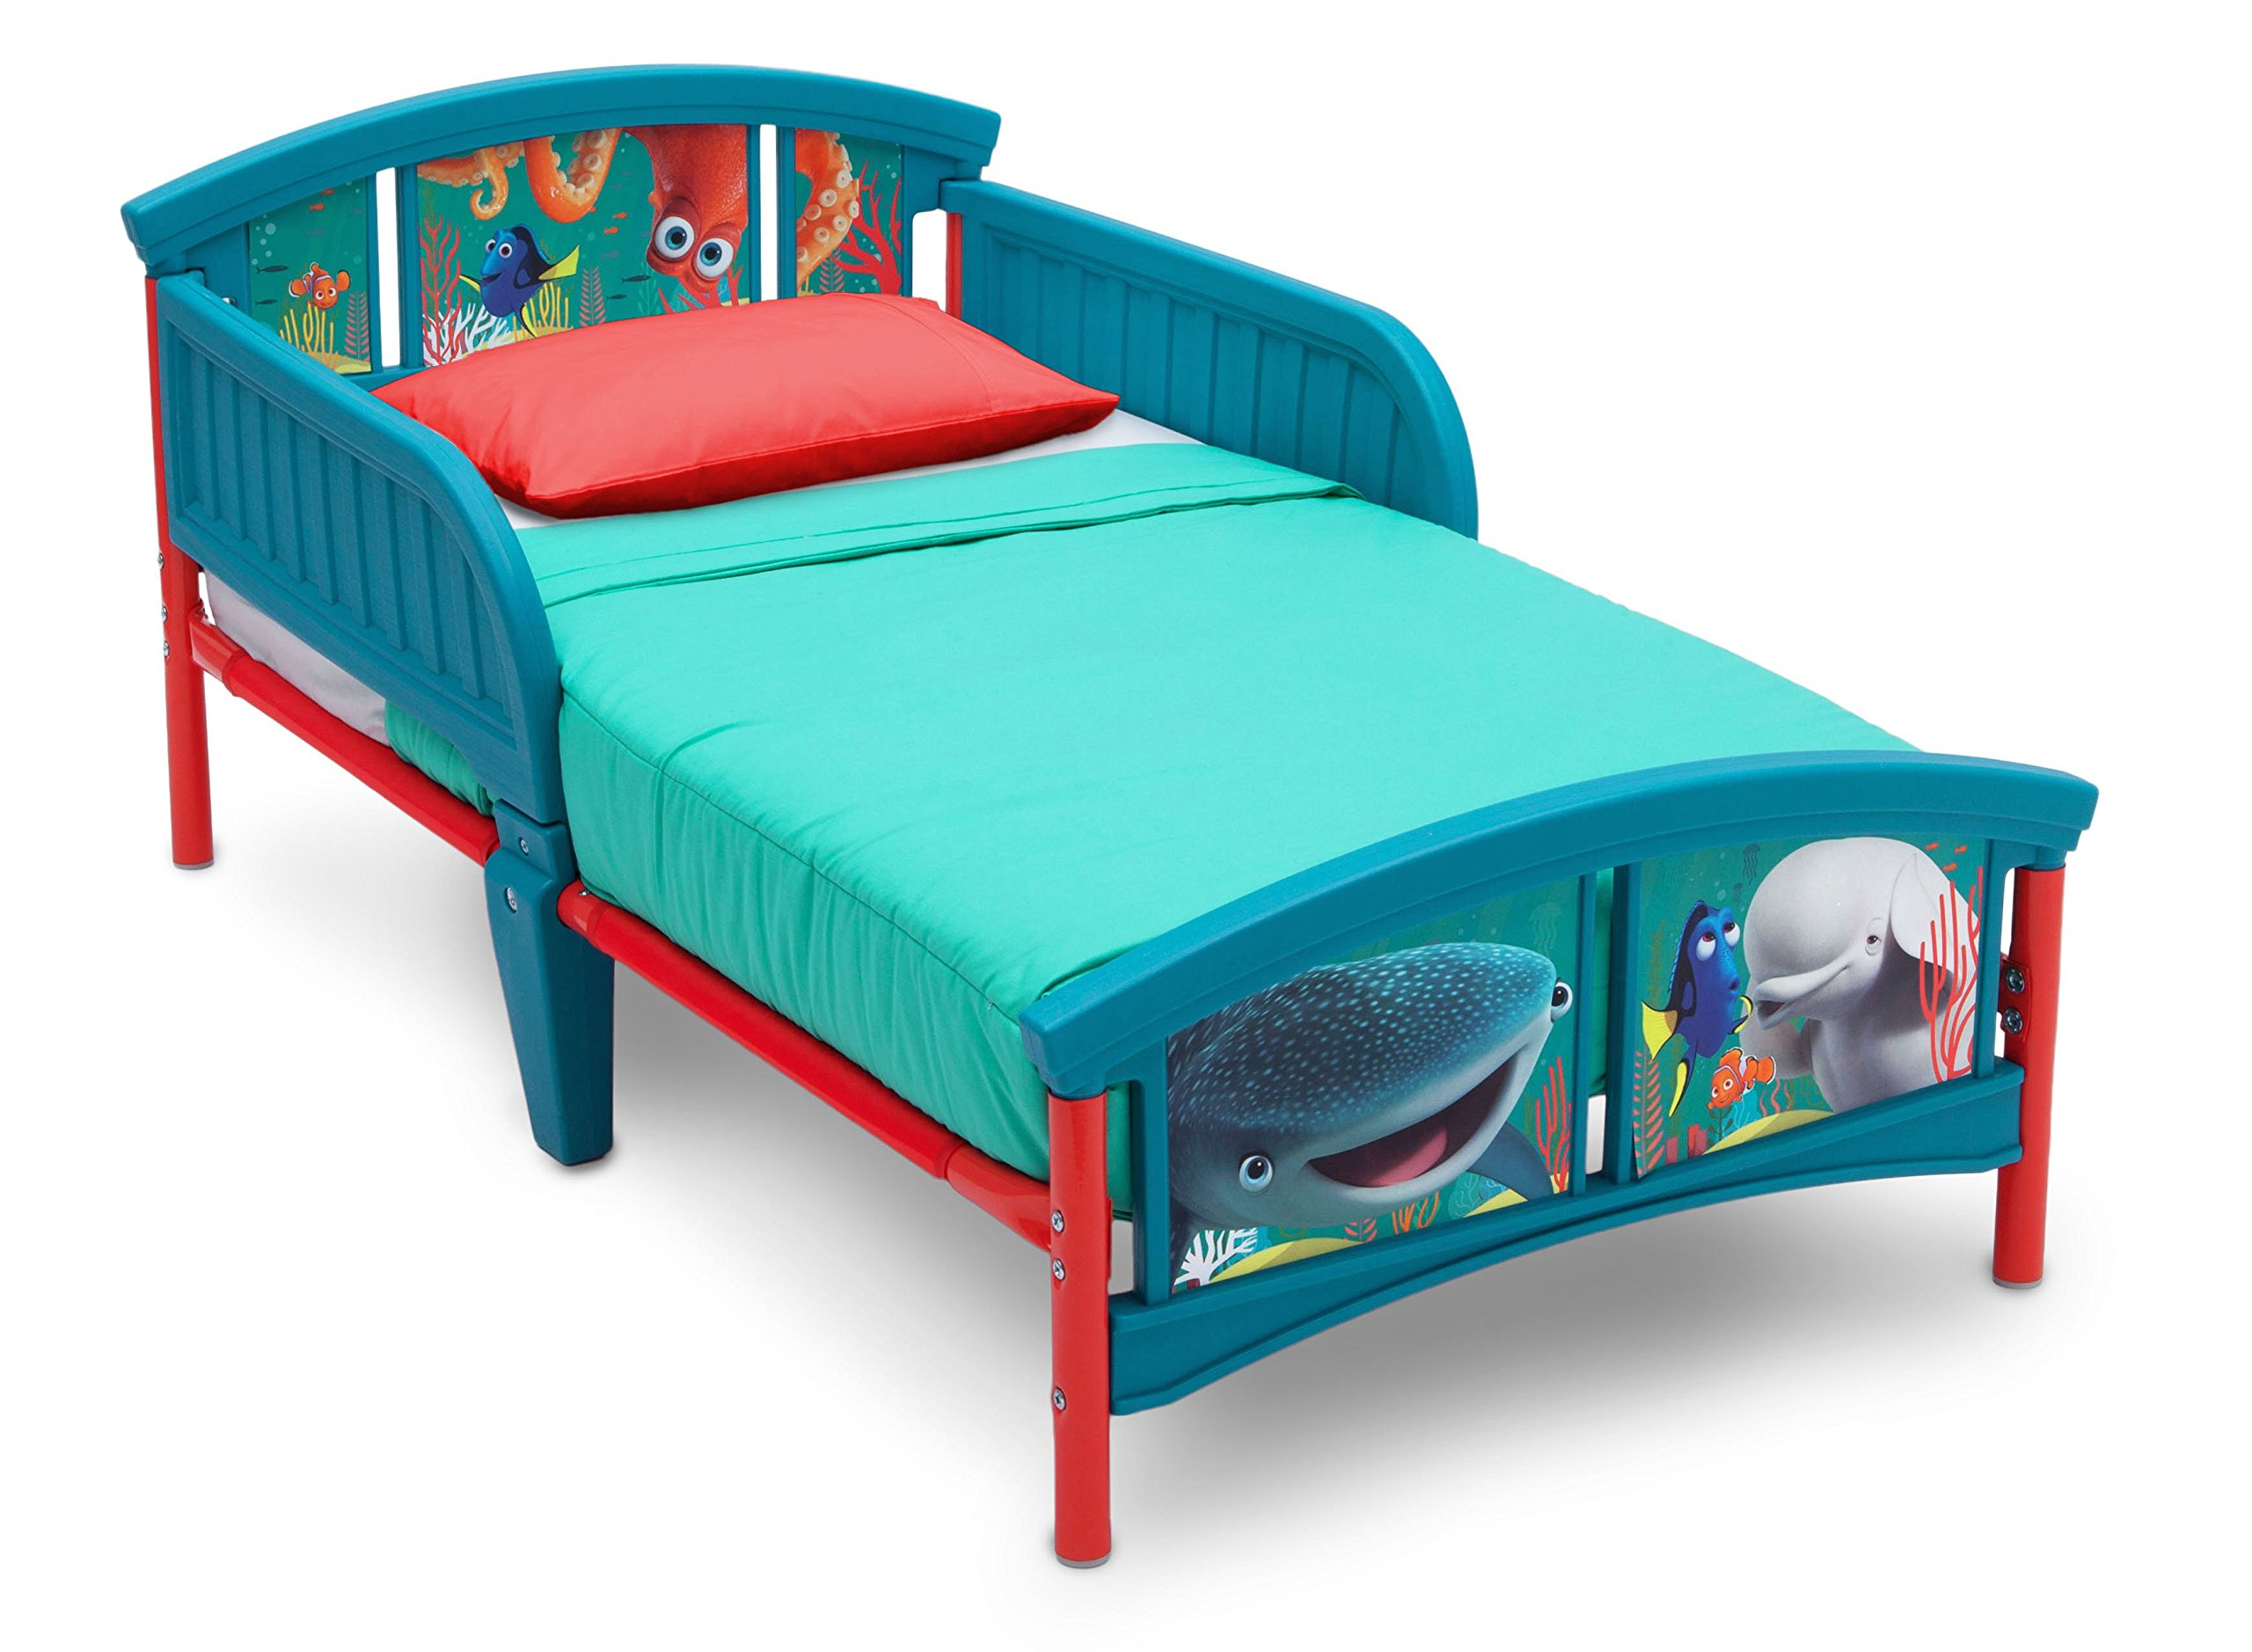 Delta Children Plastic Toddler Bed, Disney/Pixar Finding Dory